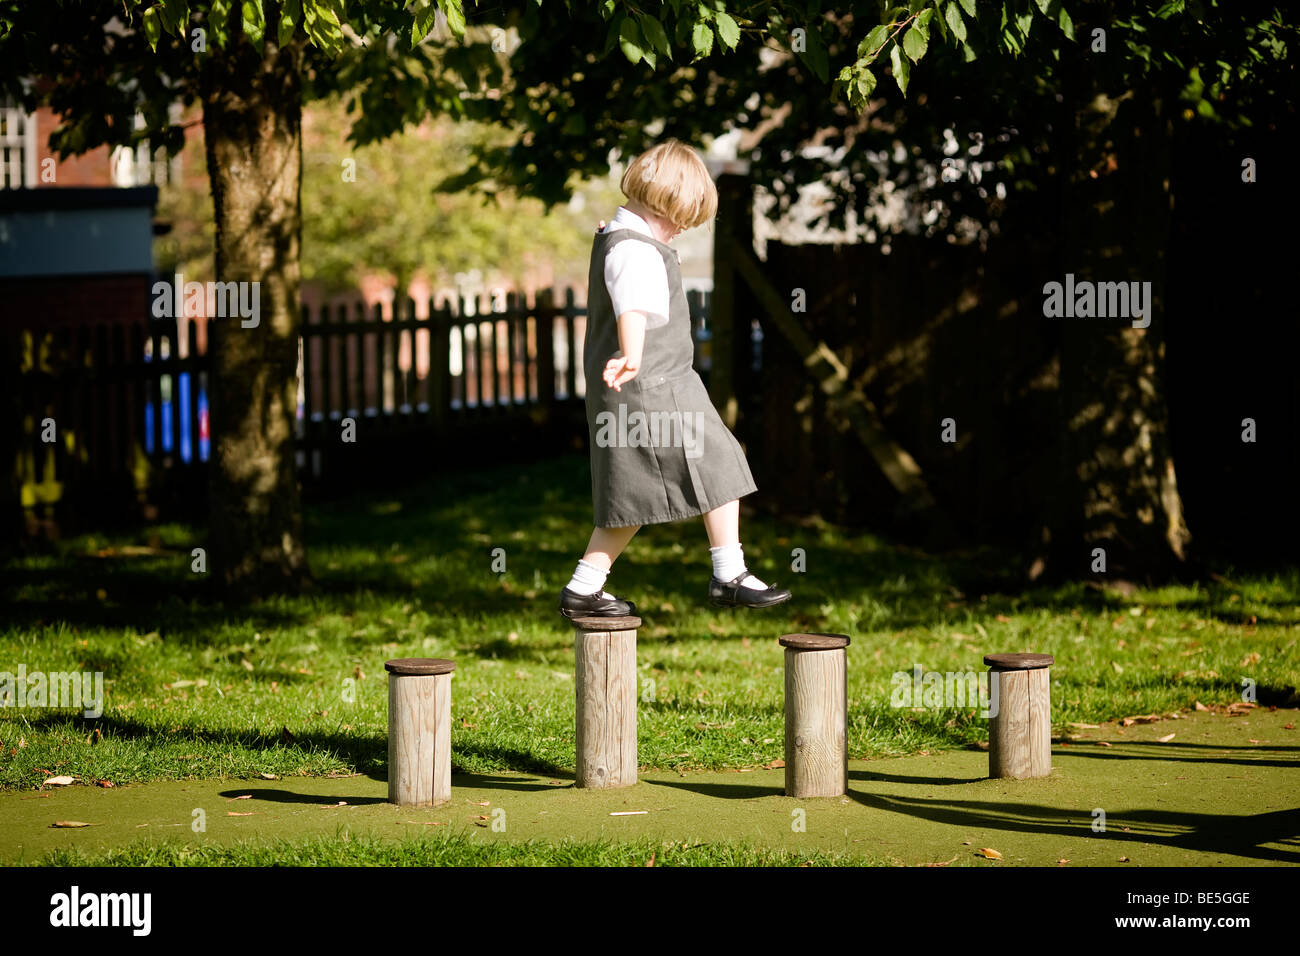 girl walking across obstacle course - Stock Image